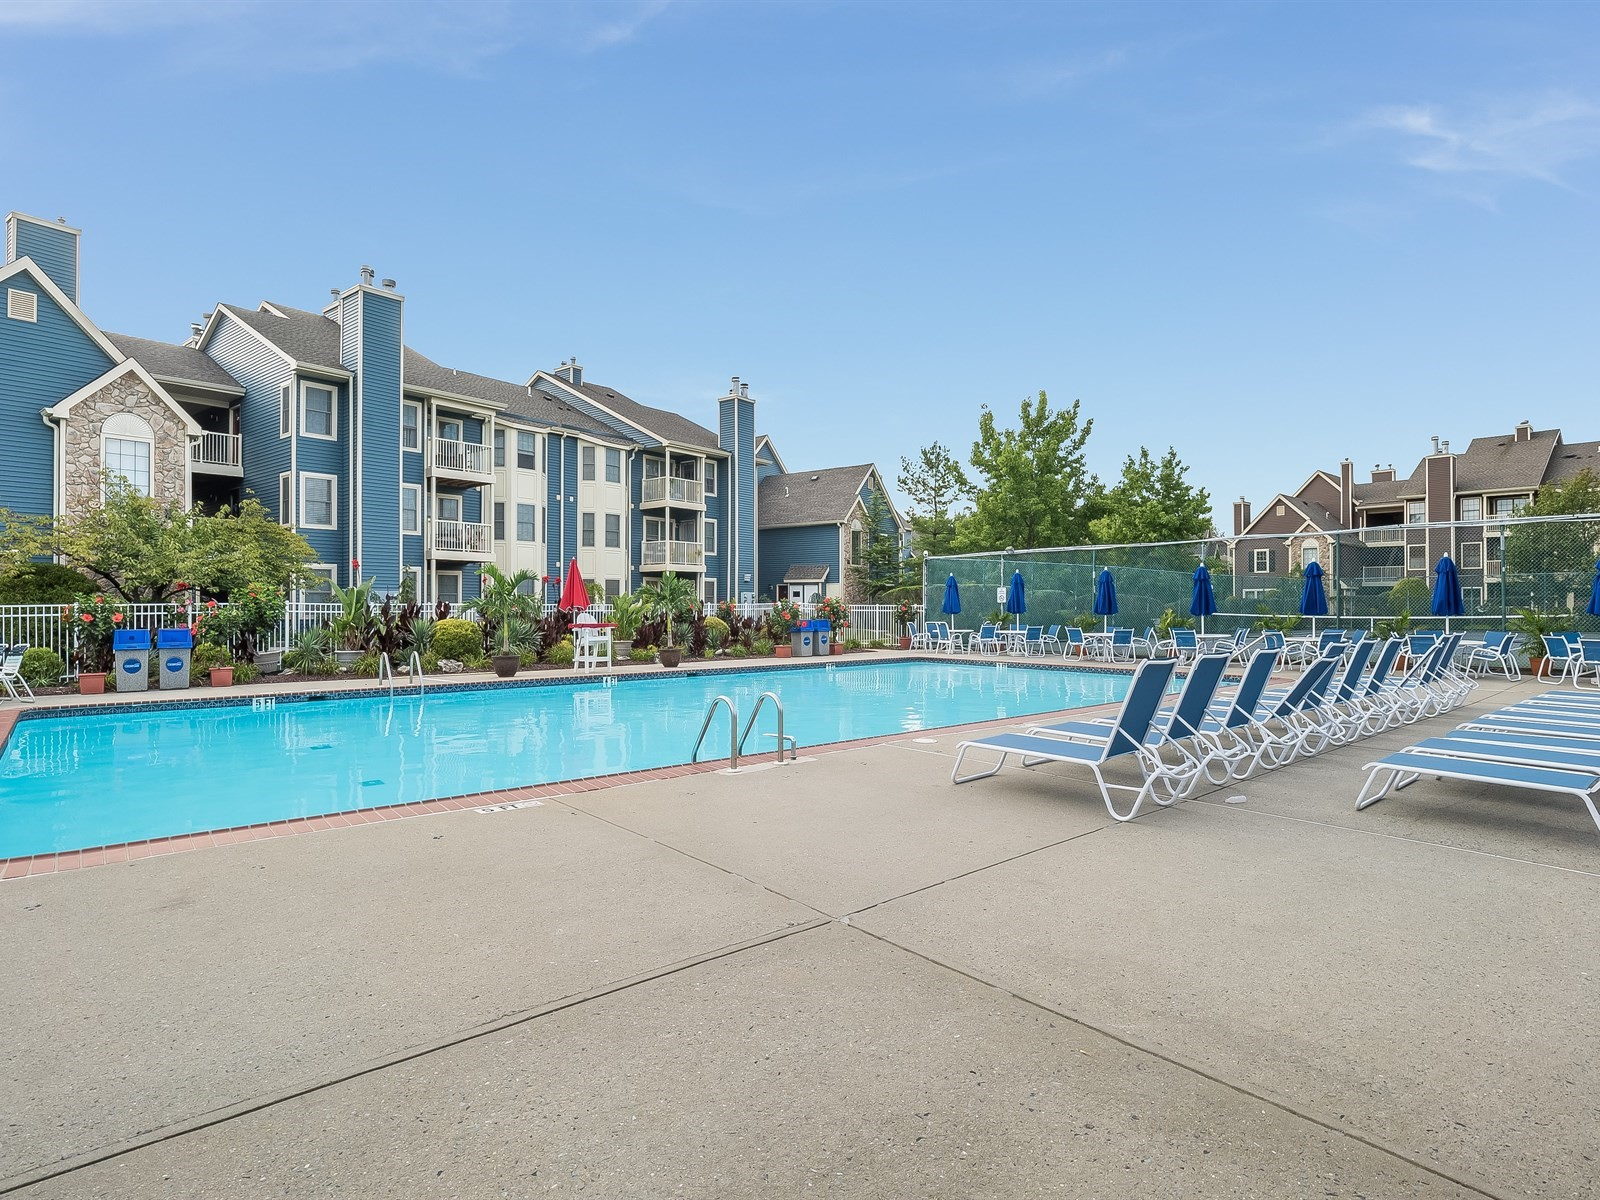 09_Short_Term_Rental__EastBrunswick_Pool